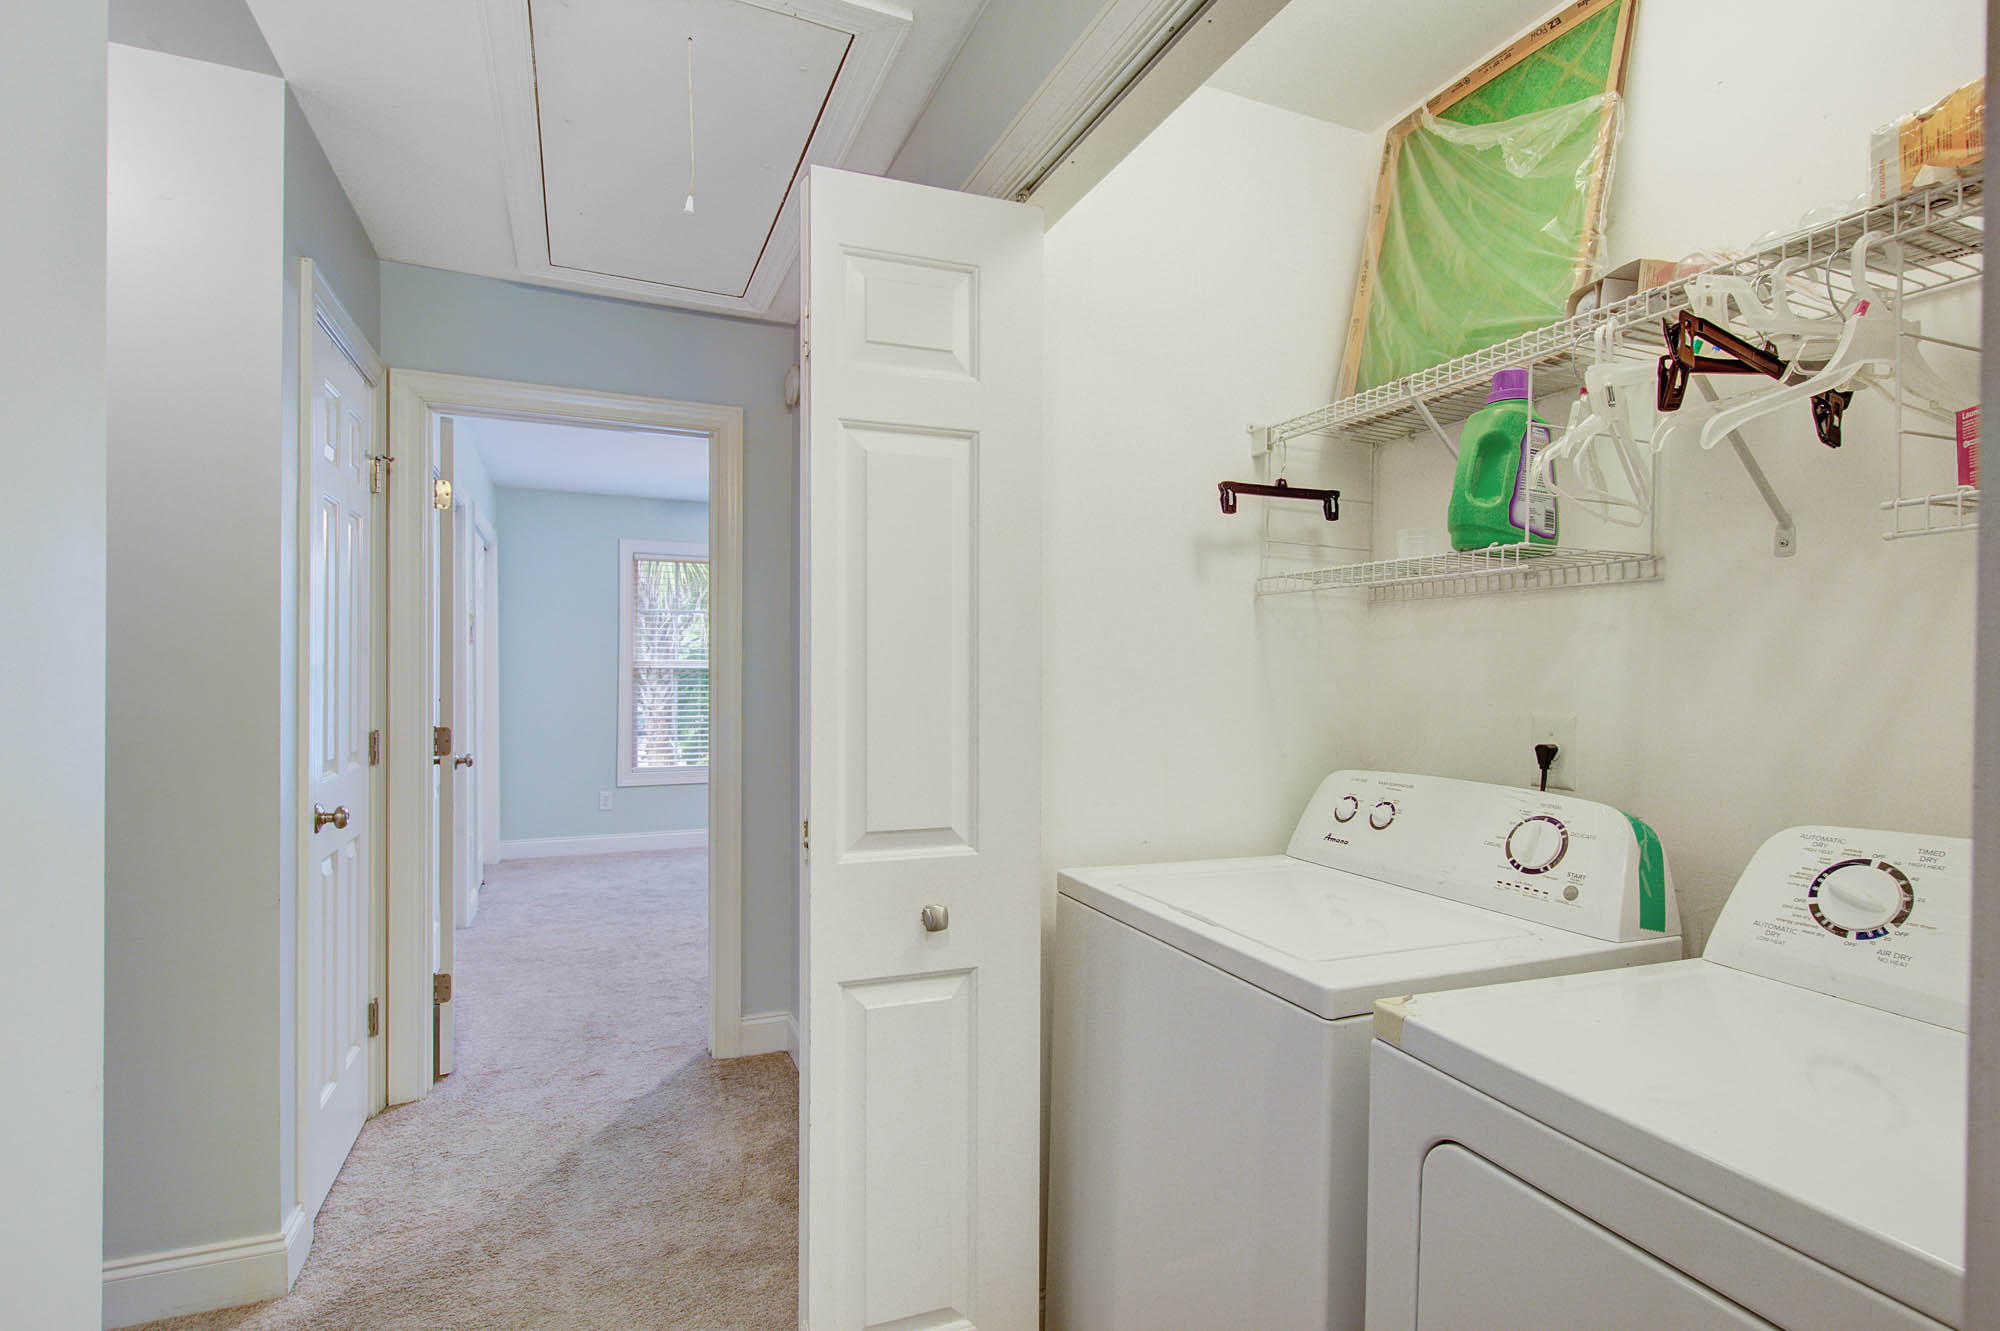 Radcliffe Place Homes For Sale - 4002 Radcliffe, Charleston, SC - 14